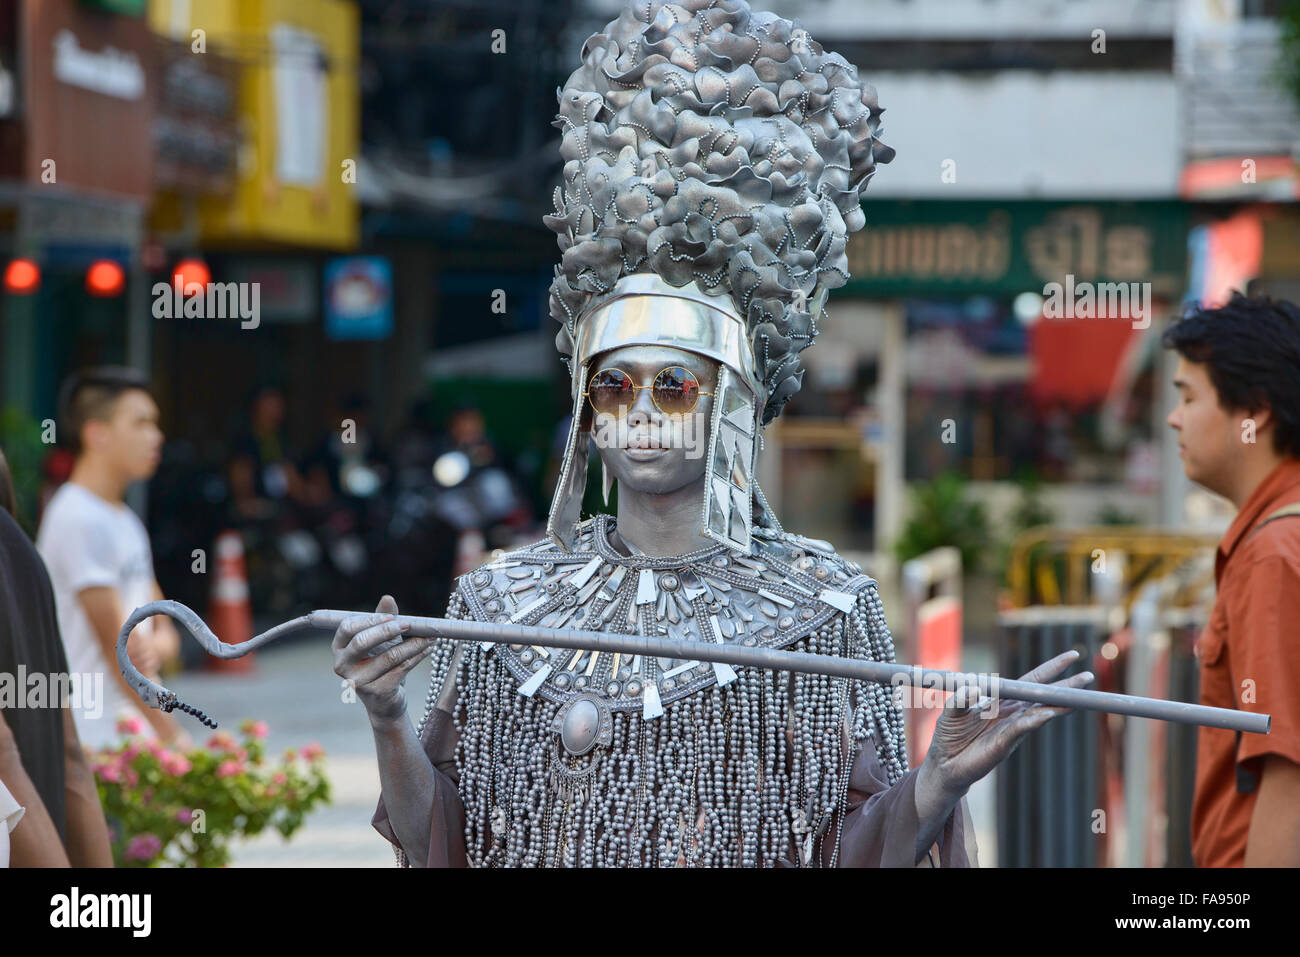 Mime at a street festival in Bangkok, Thailand Stock Photo